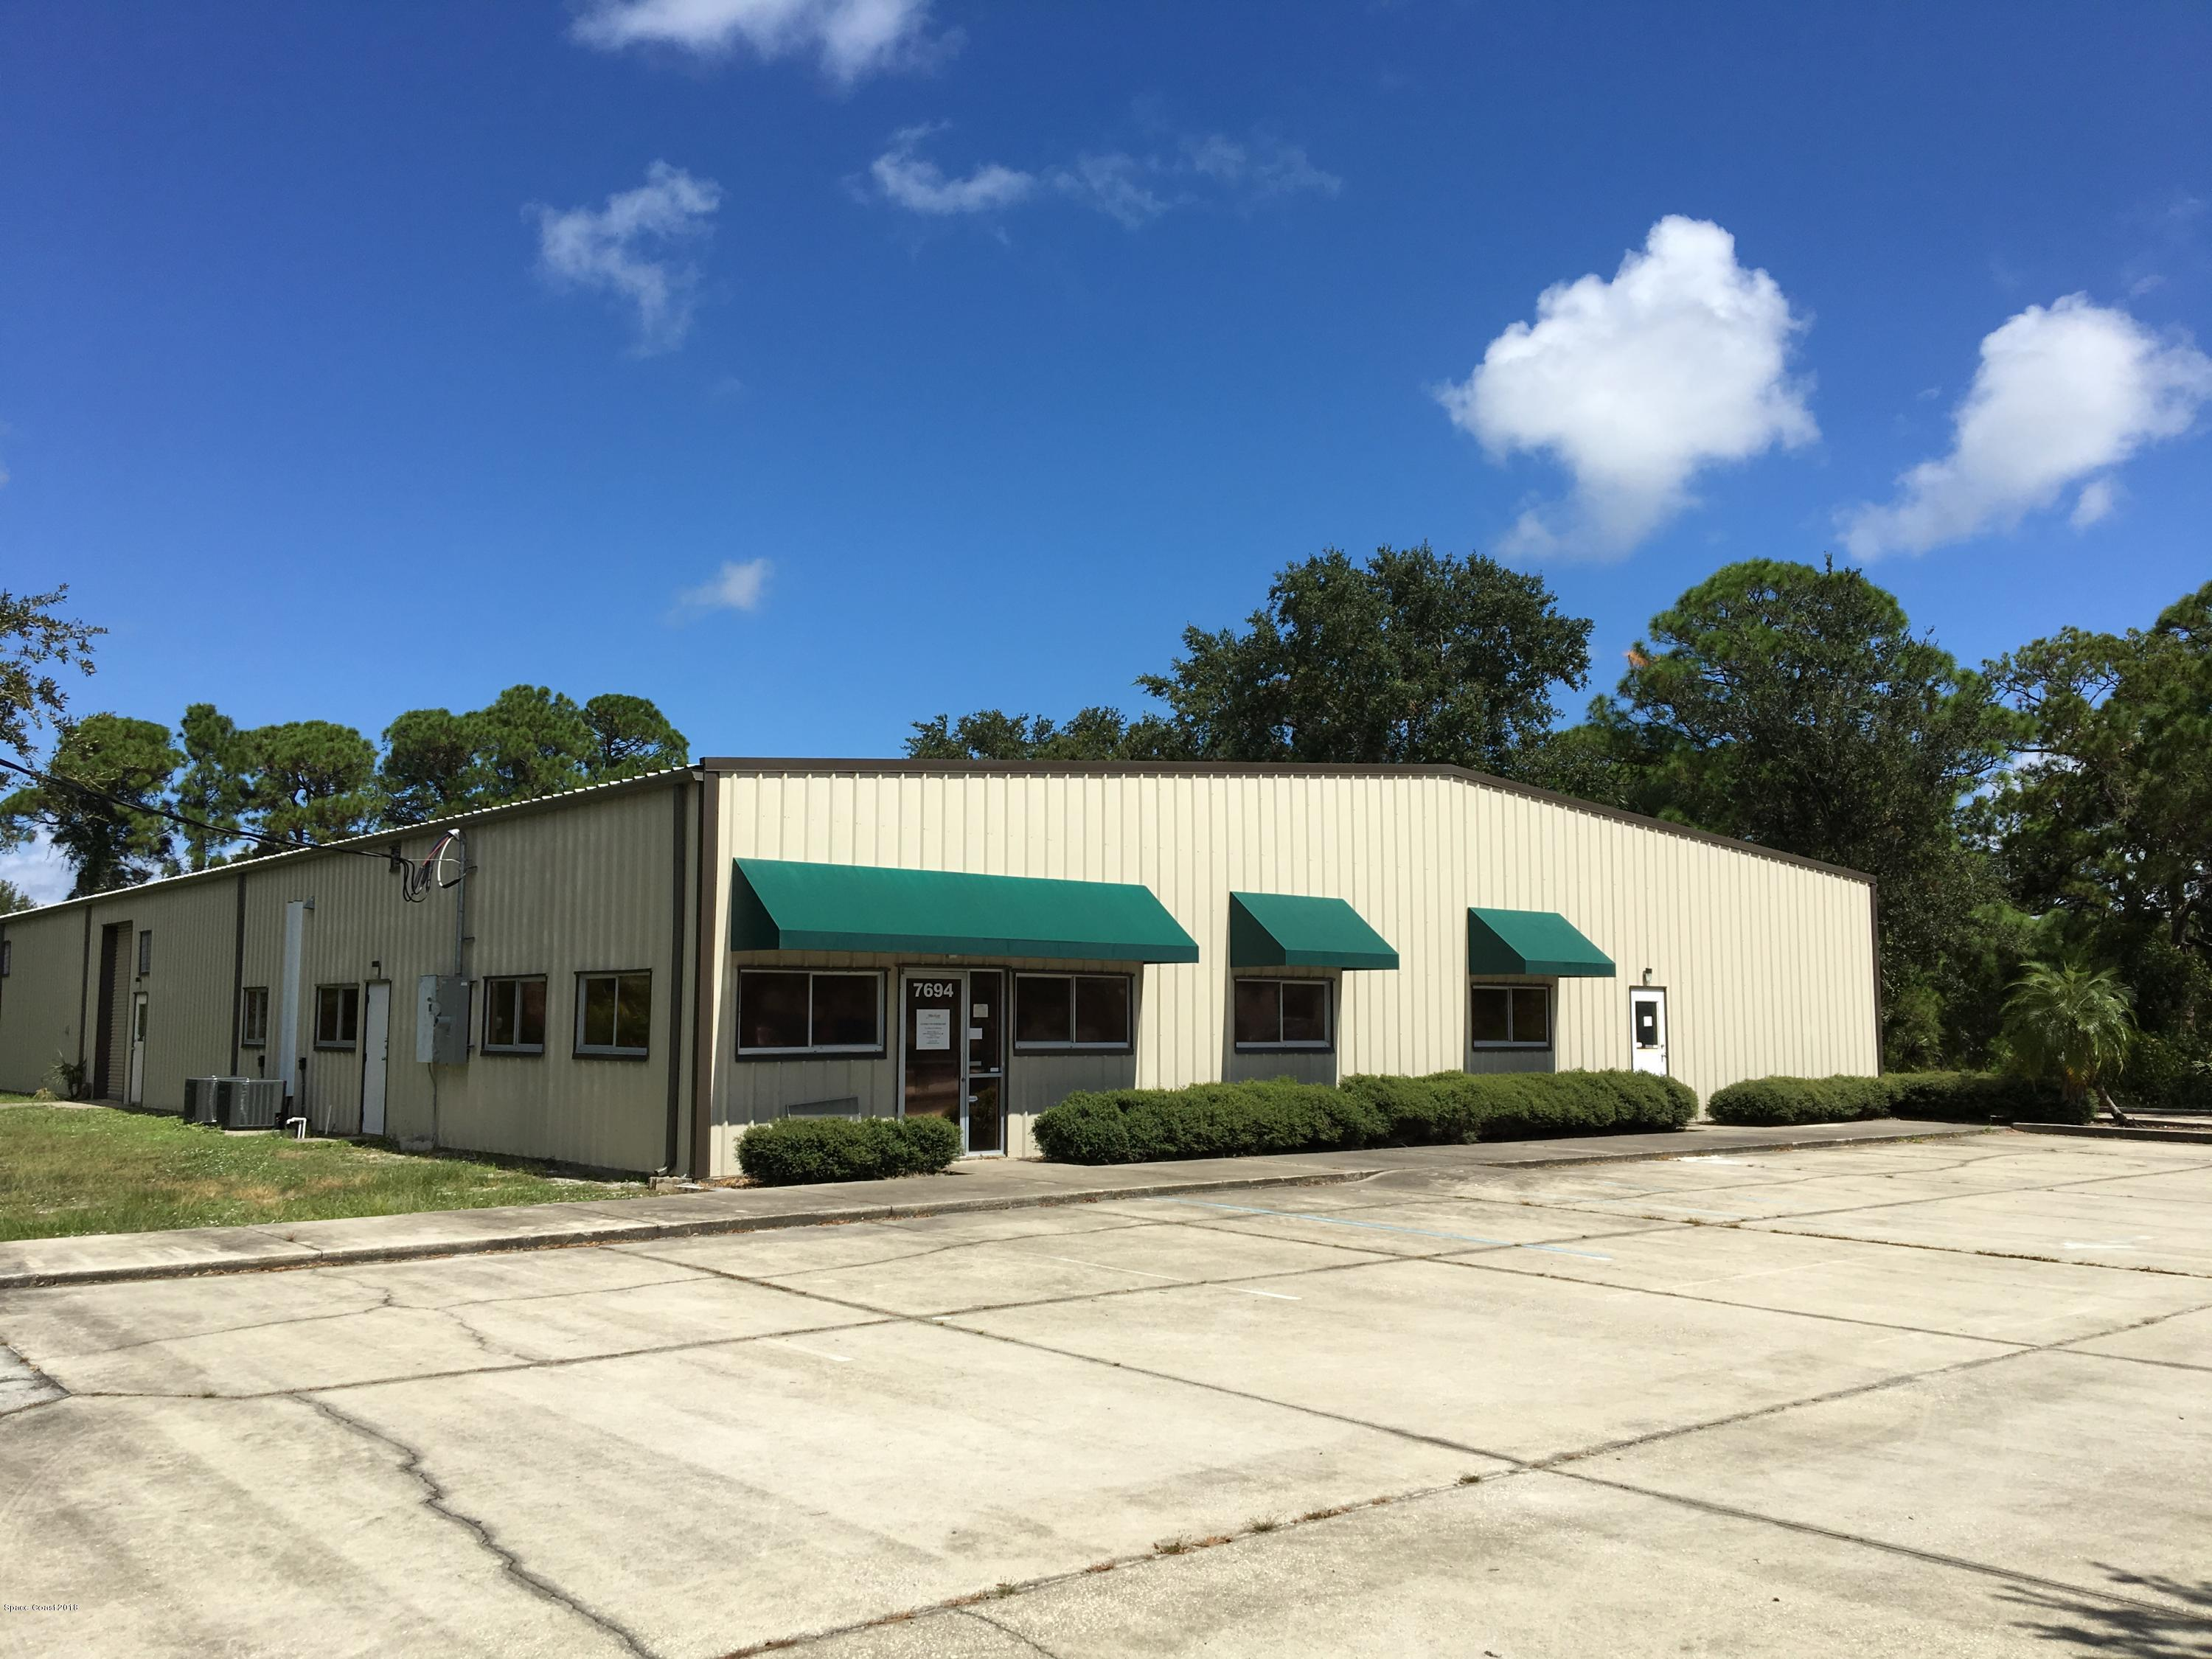 Commercial for Rent at 7694 Progress 7694 Progress West Melbourne, Florida 32904 United States